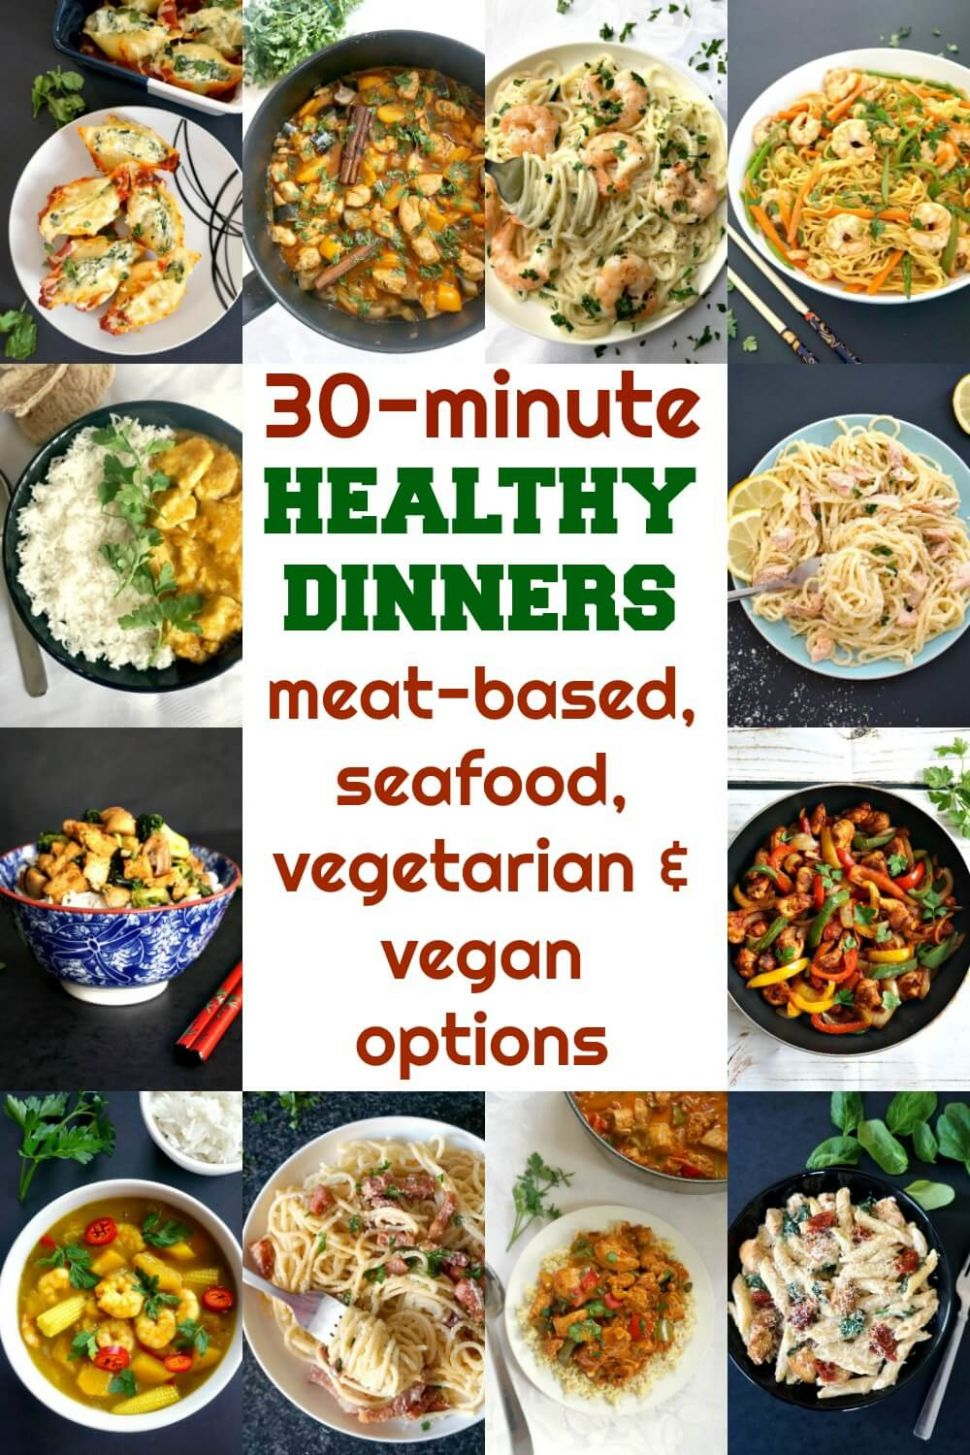 11 Minute Healthy Meals - My Gorgeous Recipes - Healthy Recipes To Try